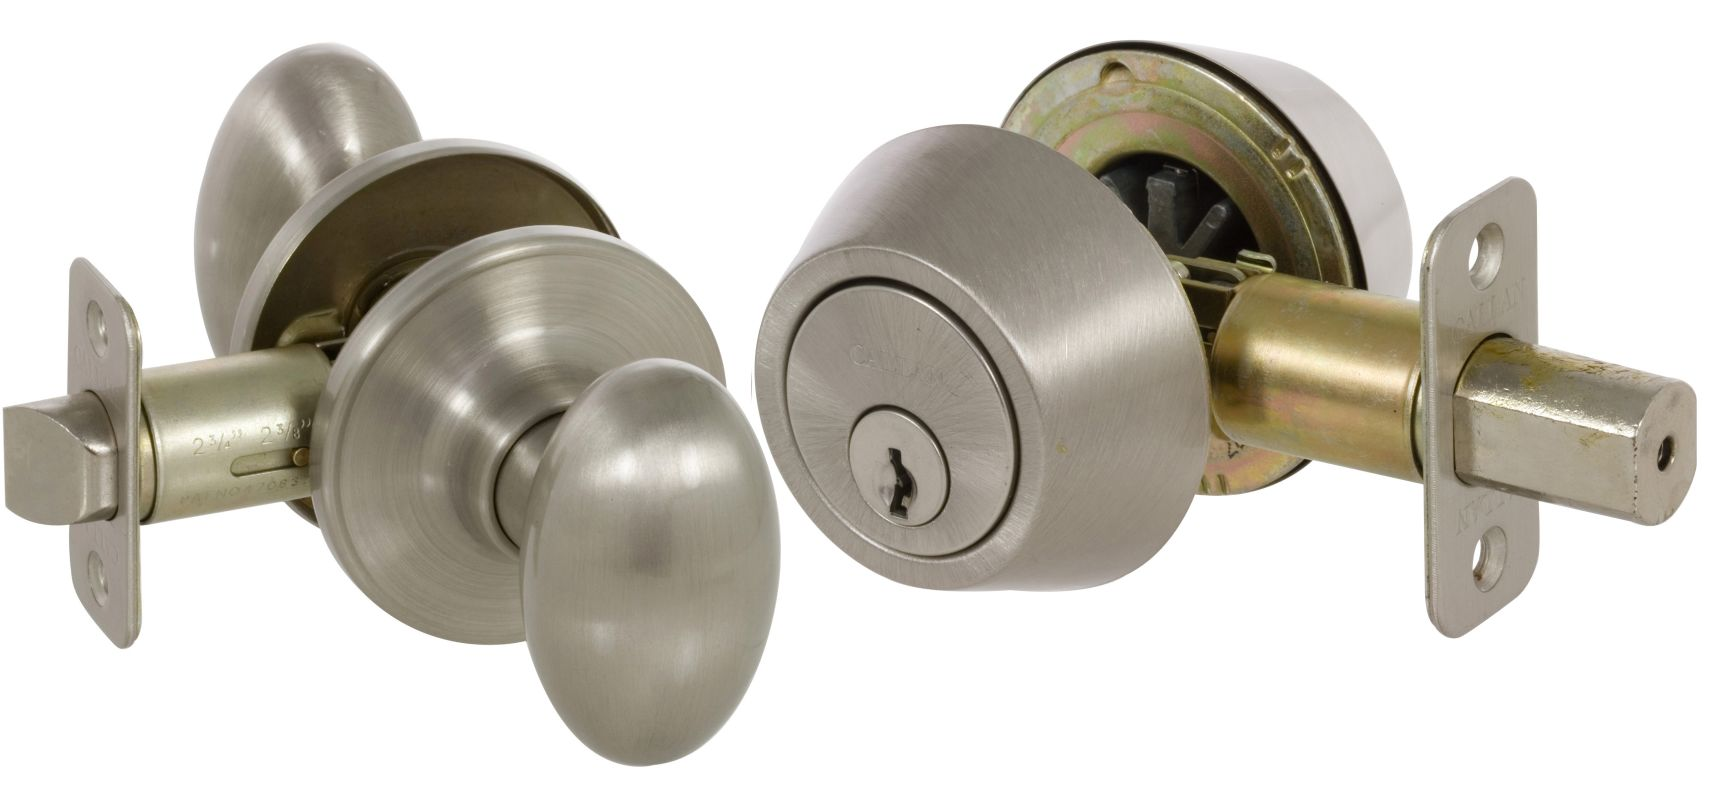 Callan Ke3001 Satin Nickel Camden Series Grade 3 Keyed